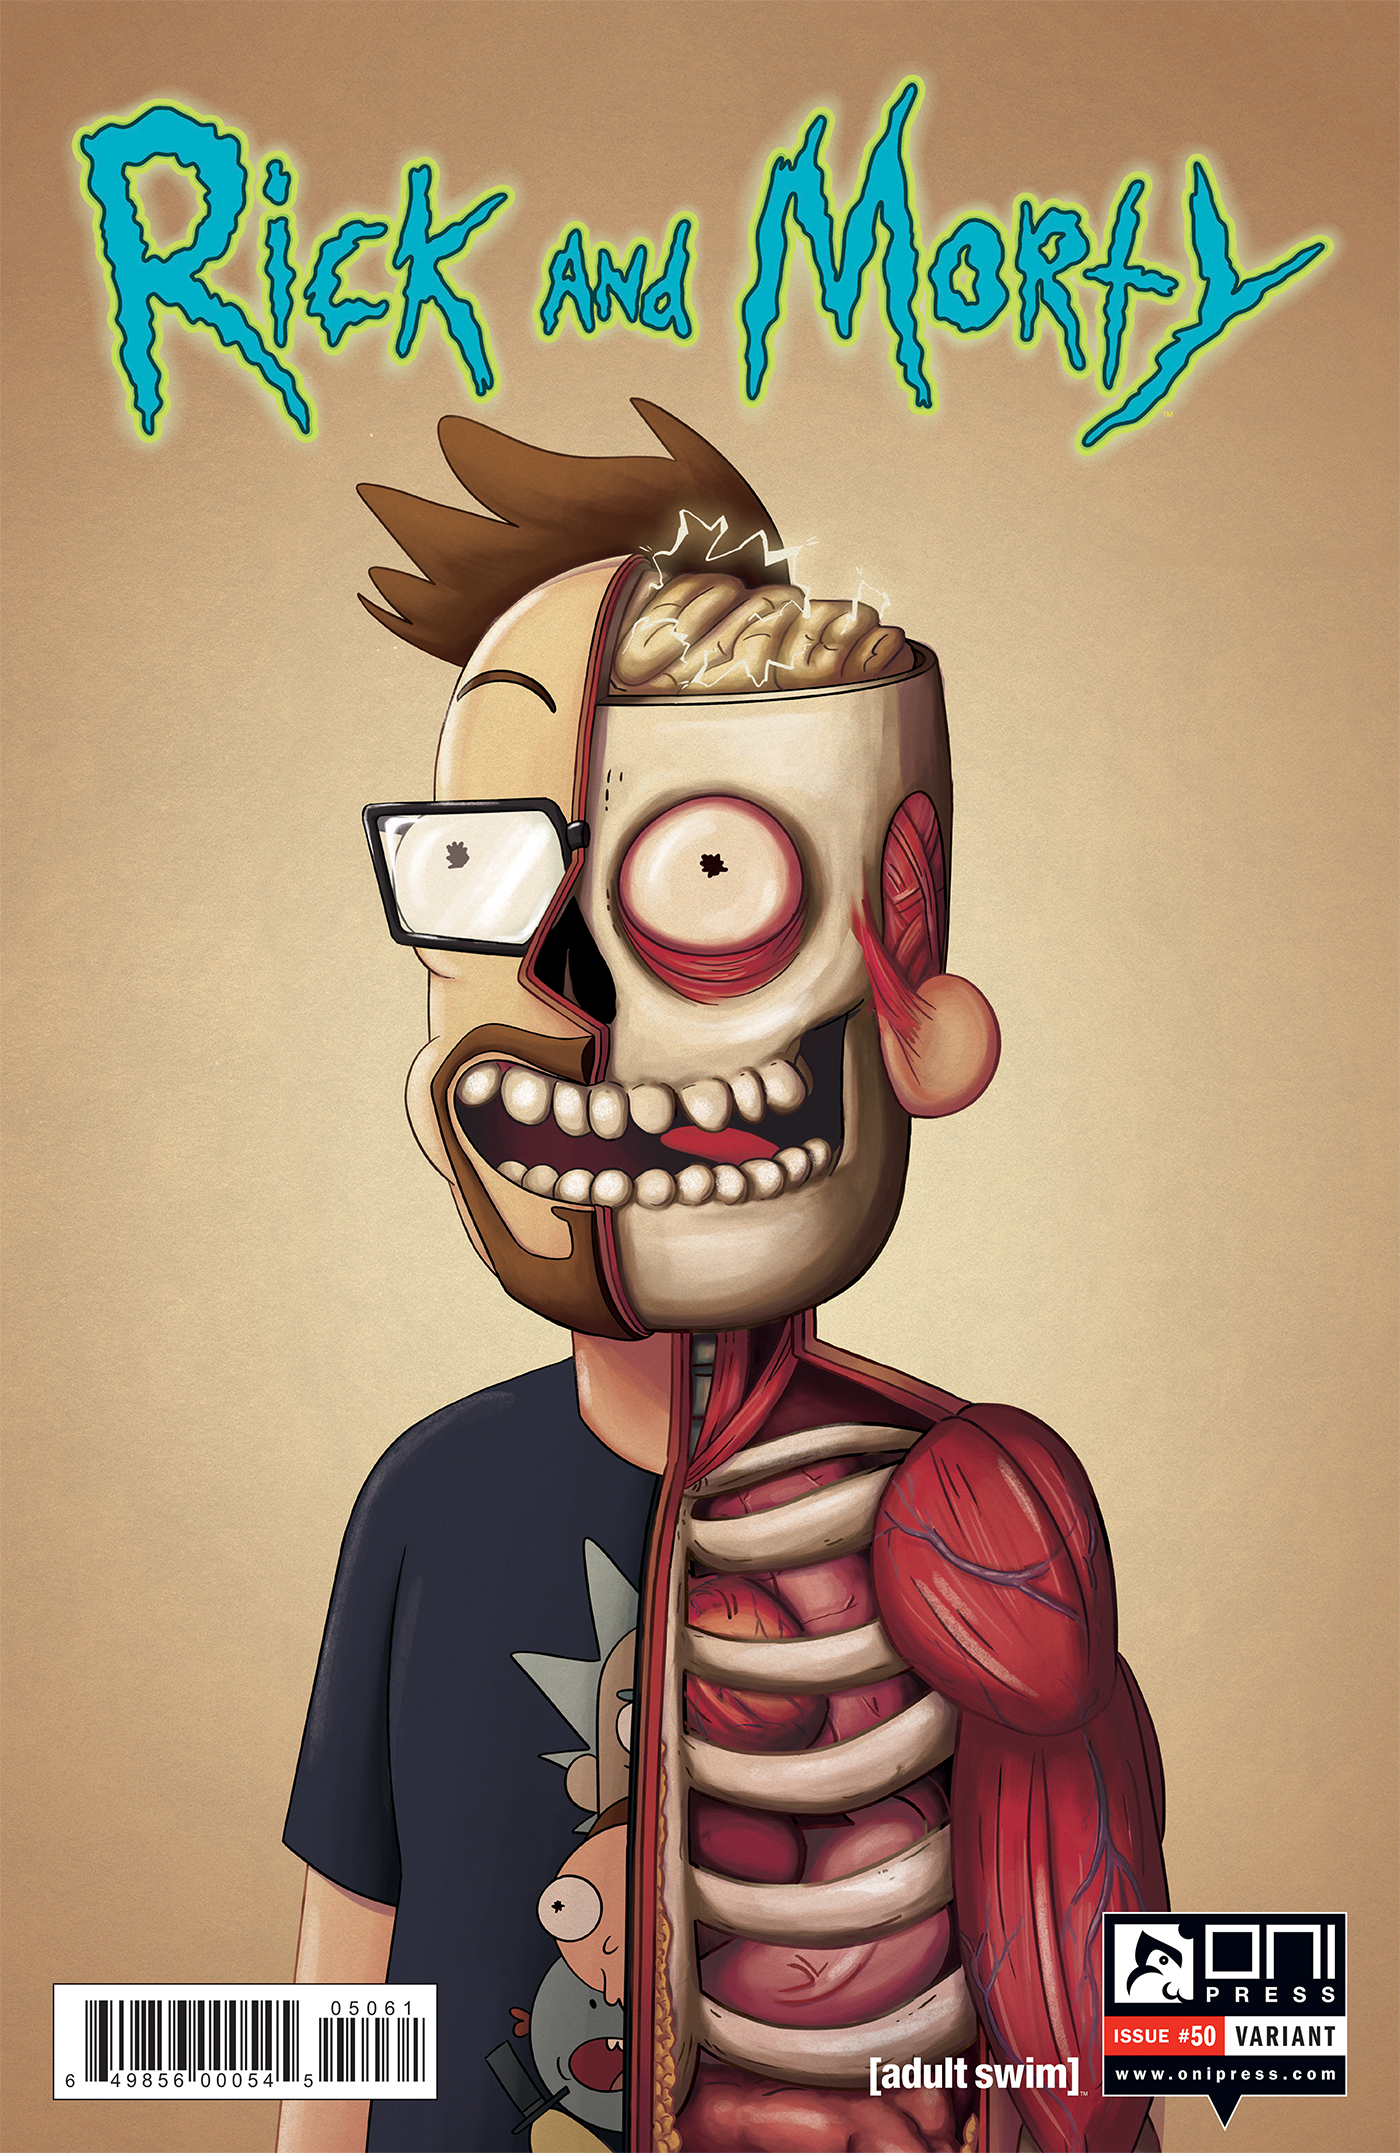 Rick and Morty Issue 50